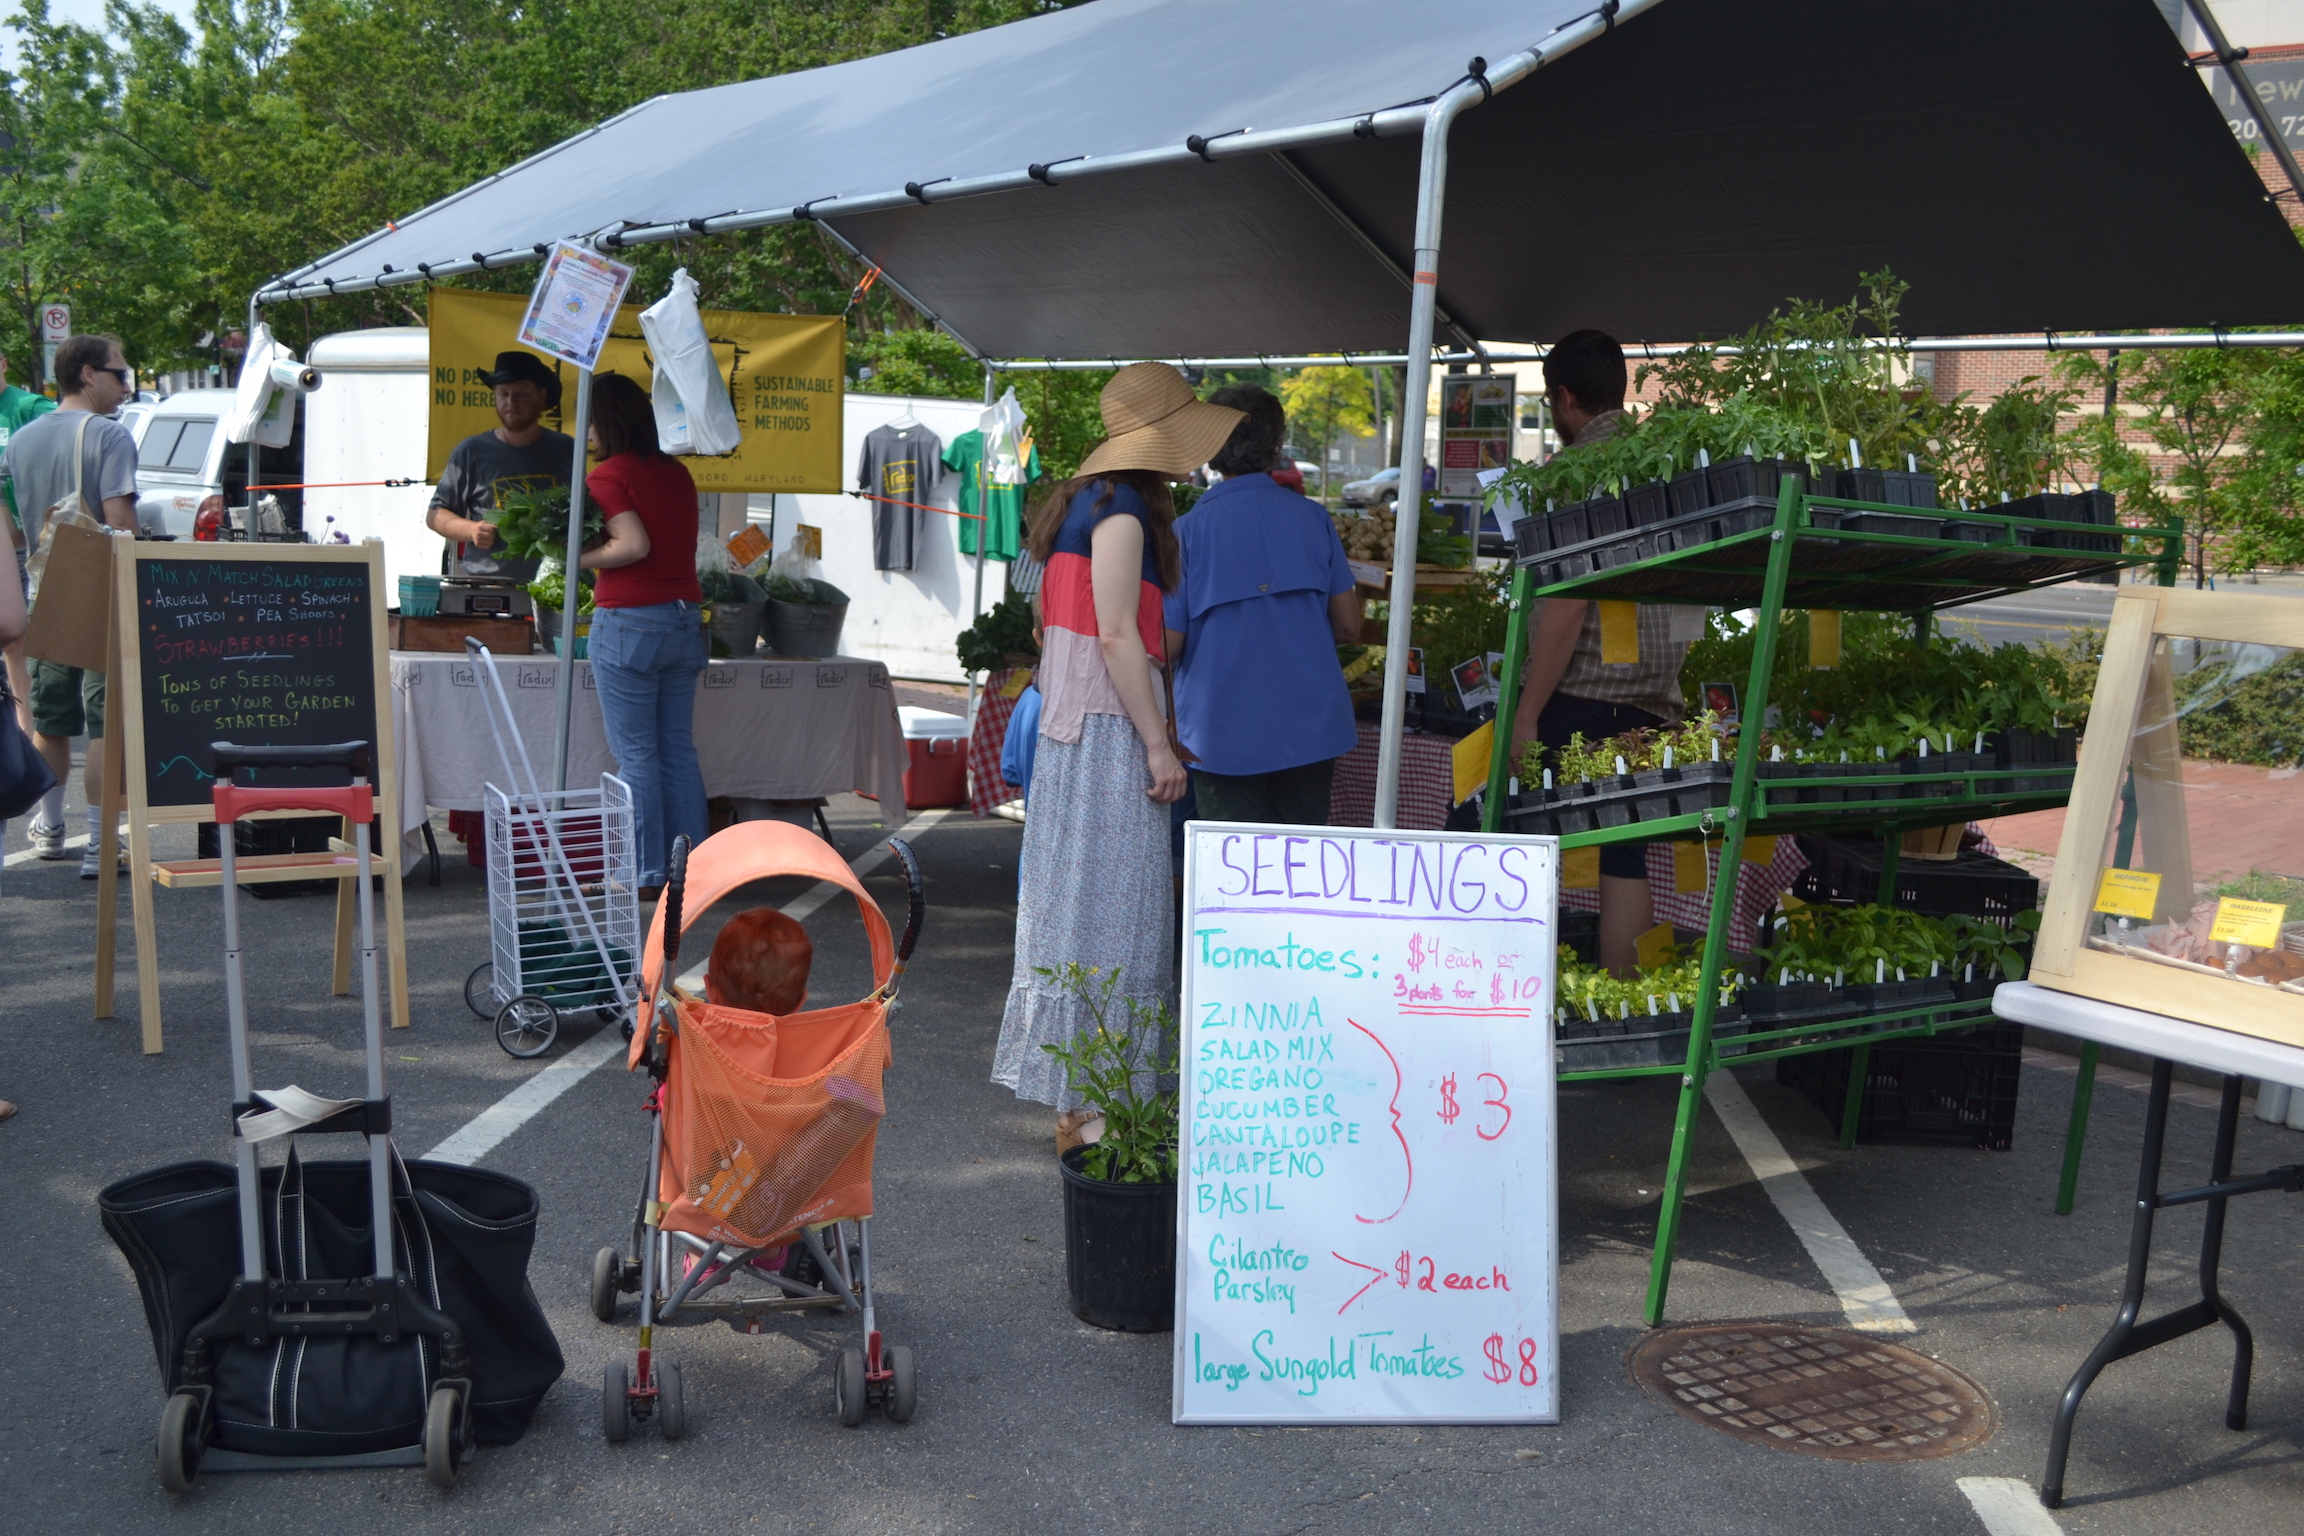 Radix farm is selling seedlings amongst other great veggies.